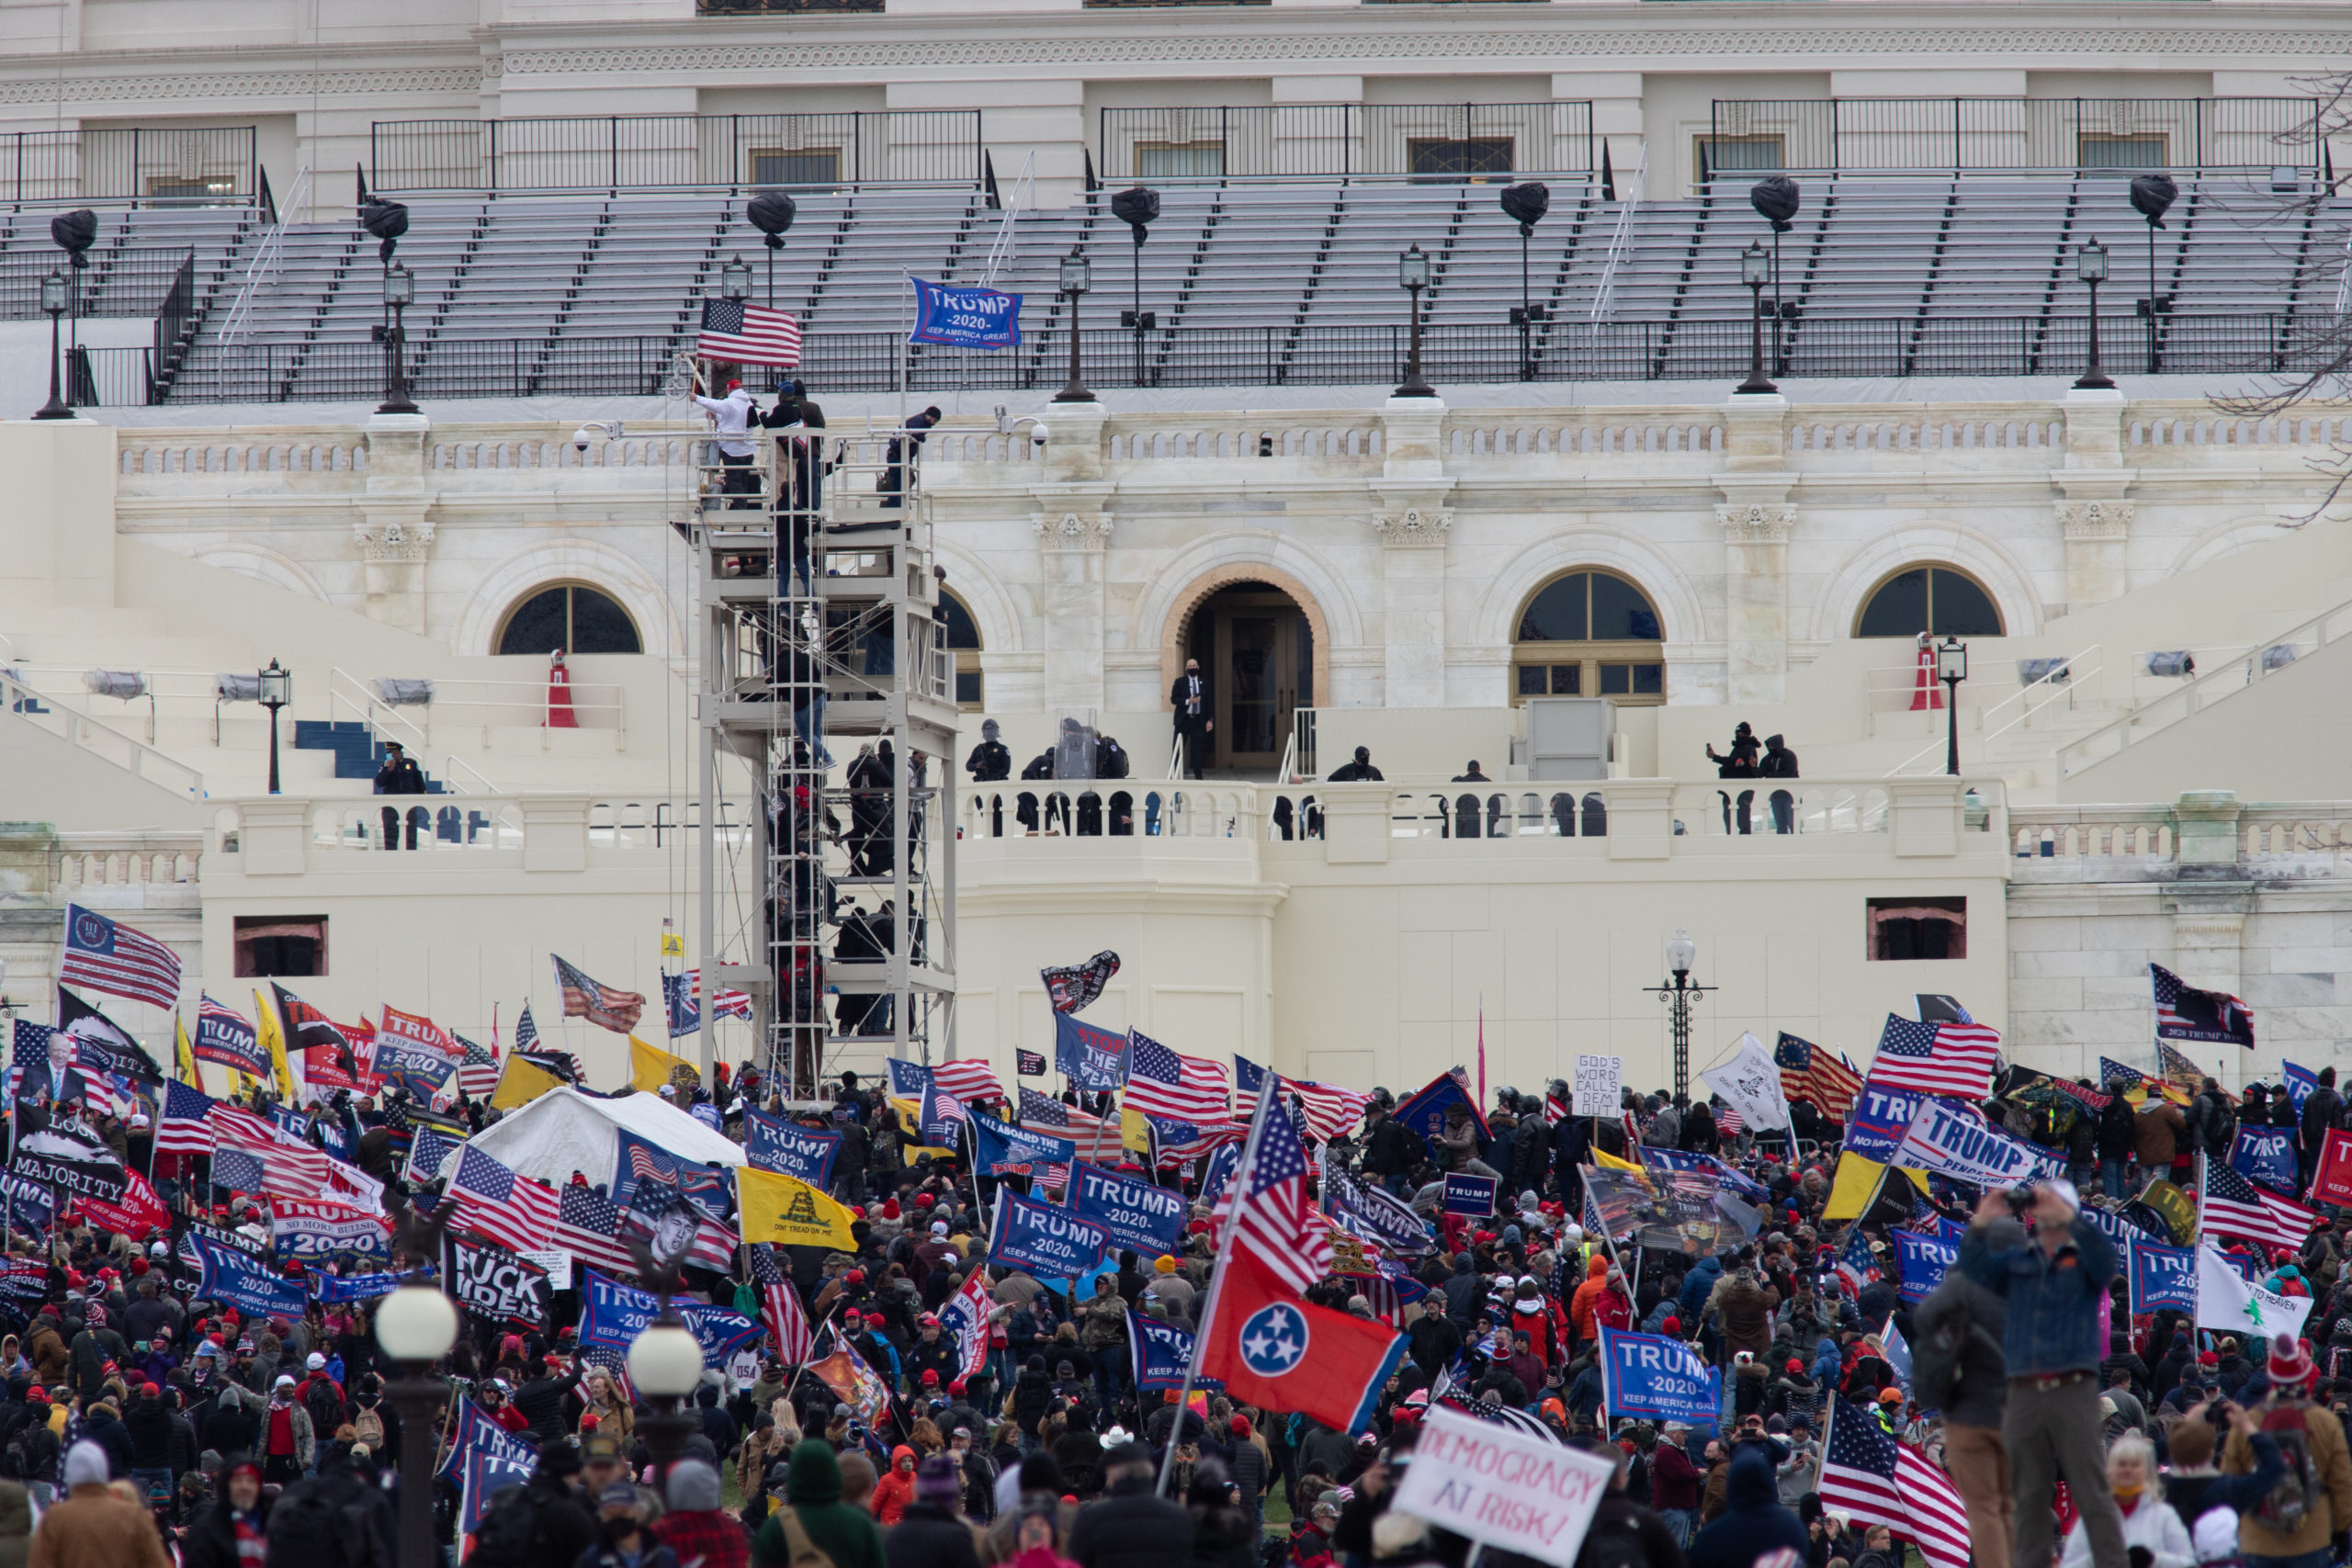 Pro-Trump protesters scaled the media tower set up for Inauguration Day in Washington, D.C. on Jan. 6, 2021. (Kaylee Greenlee - Daily Caller News Foundation)